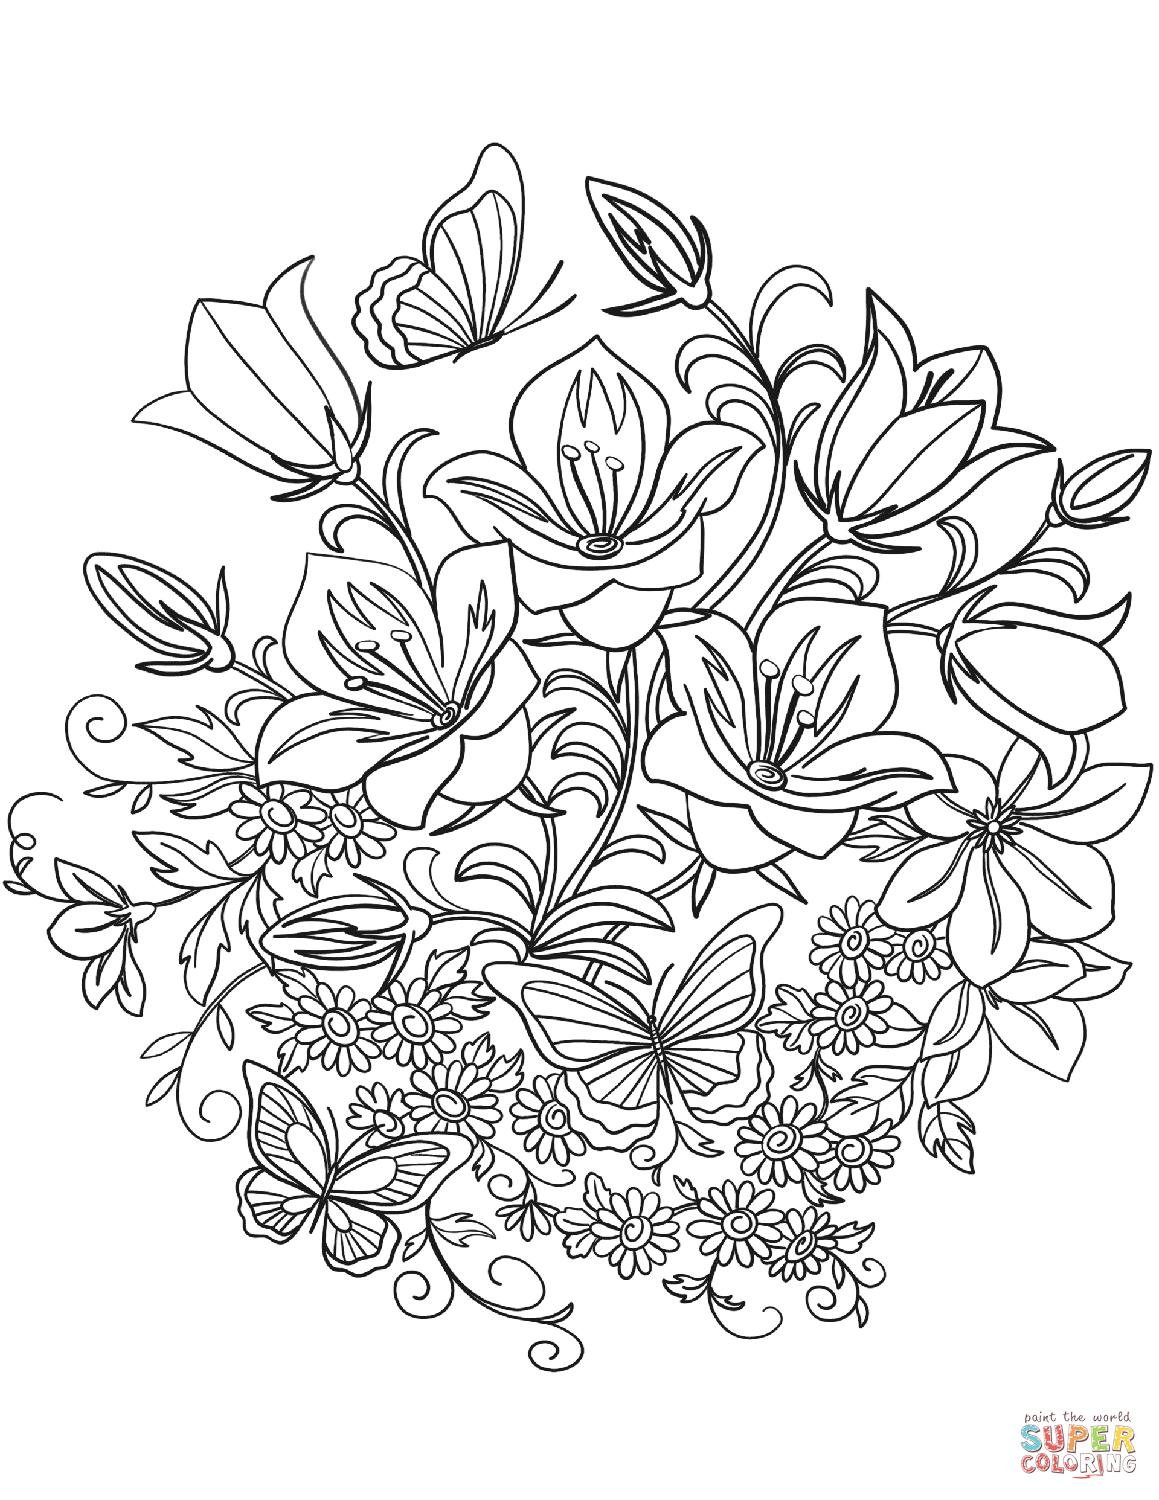 printable coloring pages of flowers and butterflies free printable butterfly coloring pages for kids printable pages coloring butterflies and flowers of